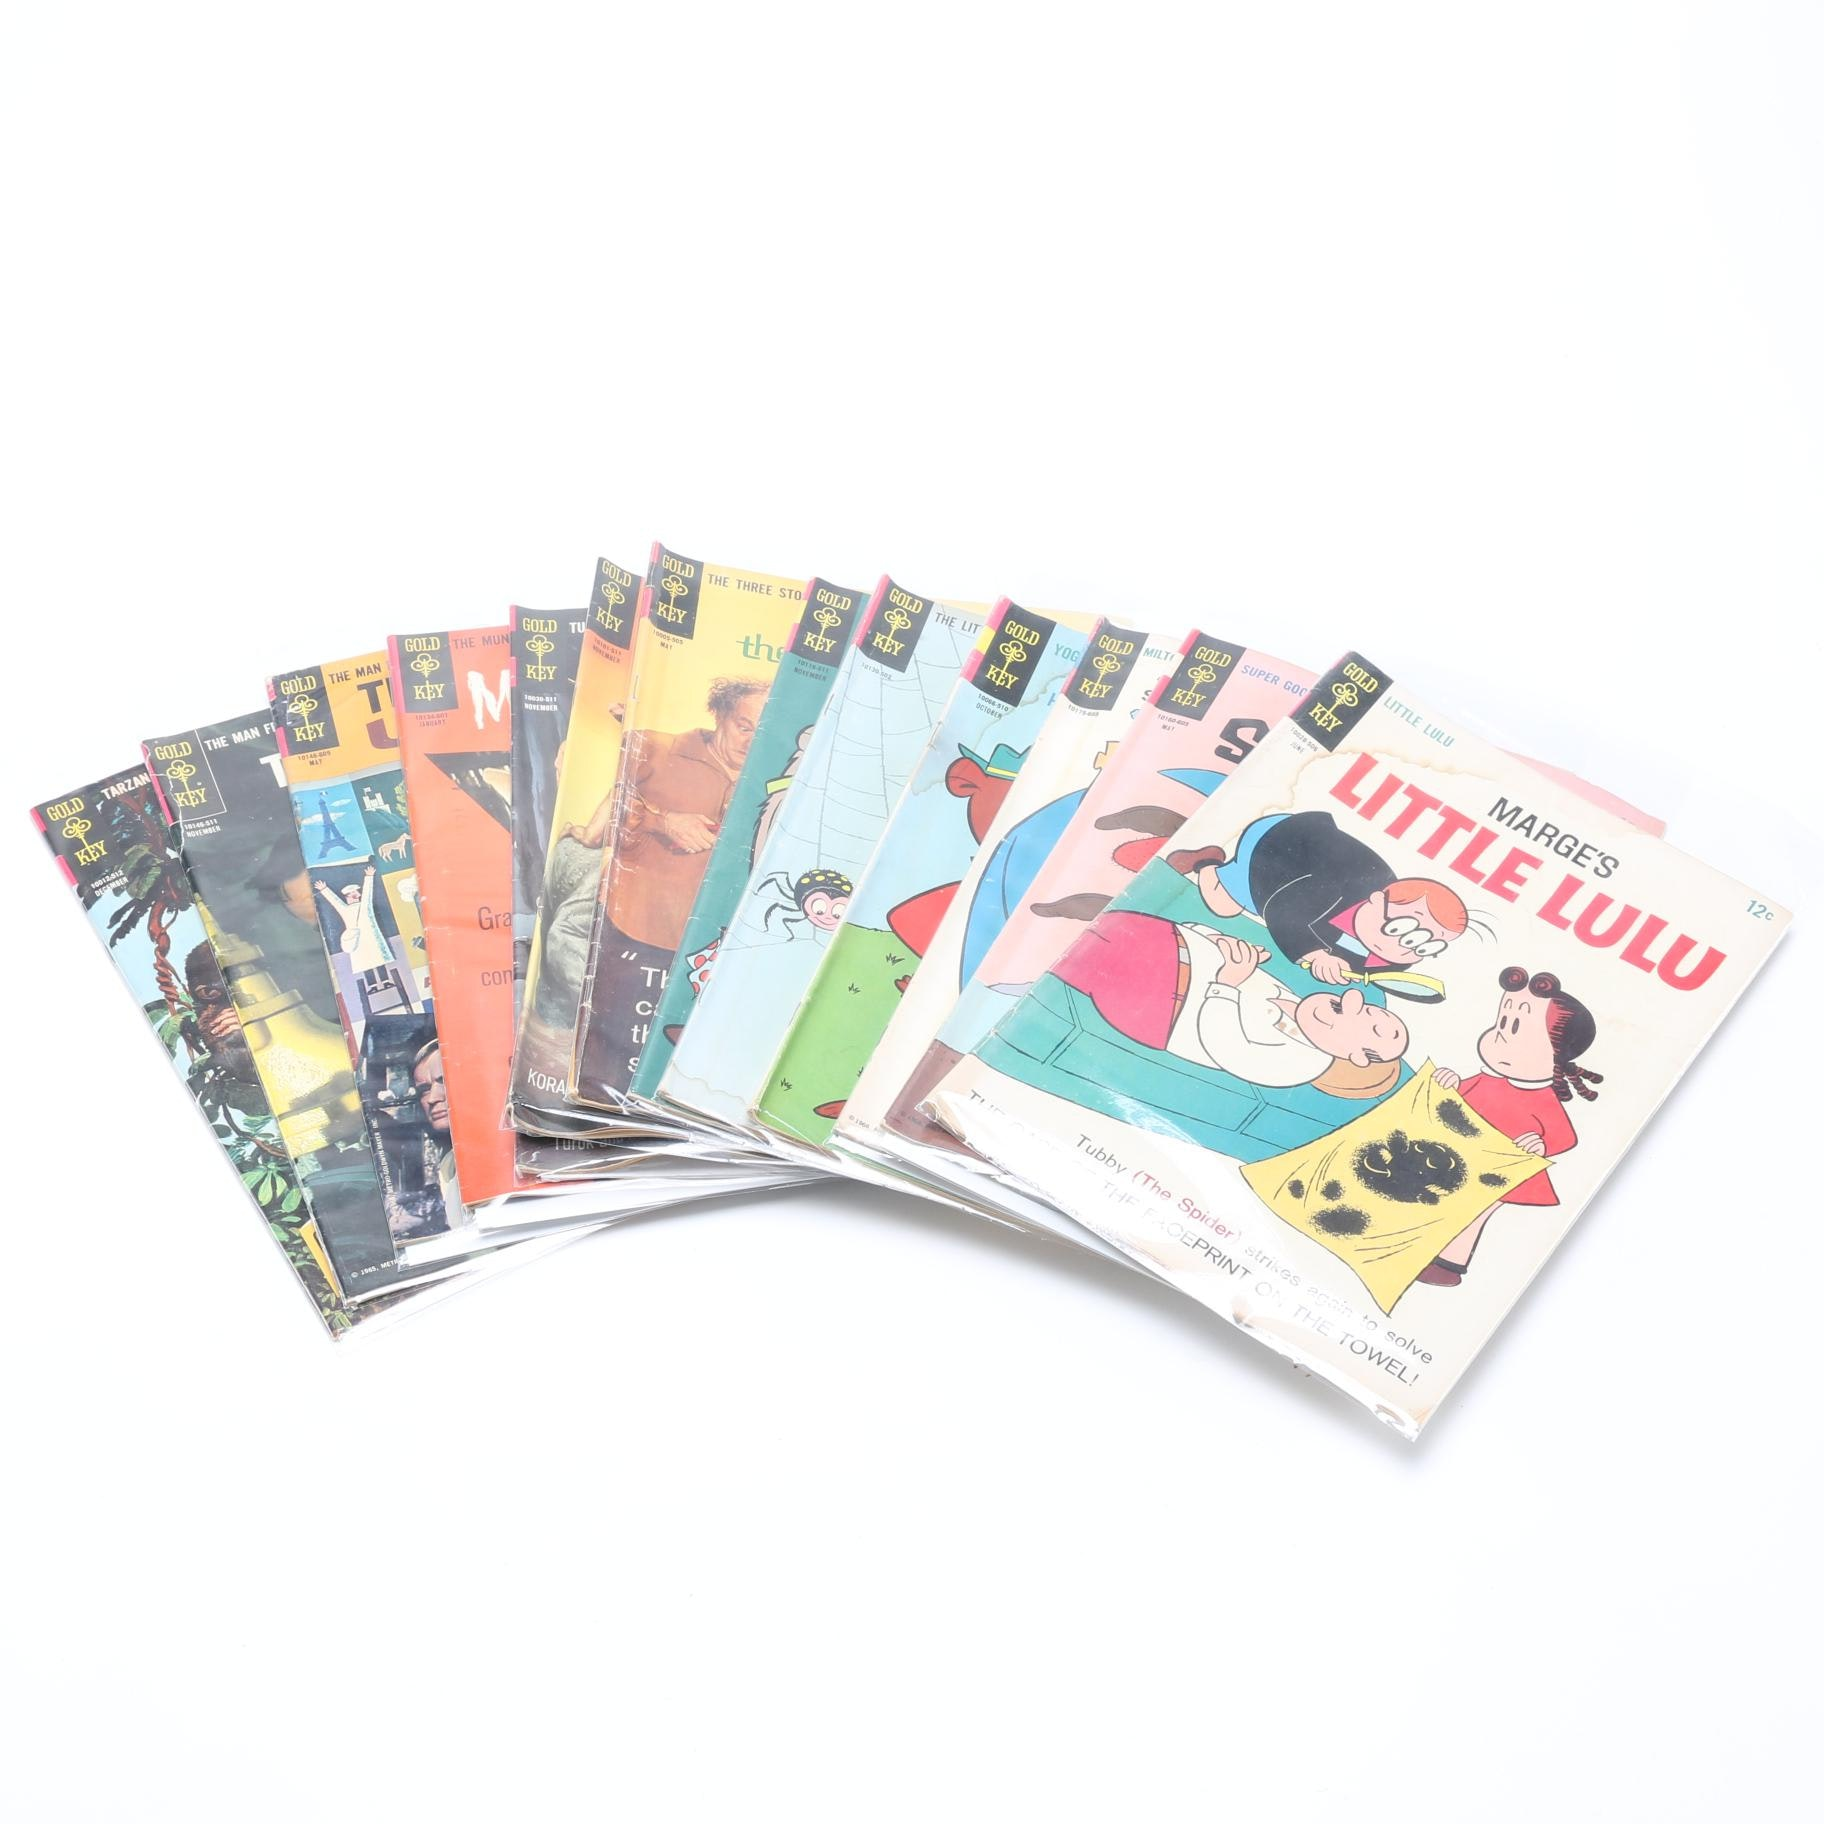 Collection of Gold Key Comics